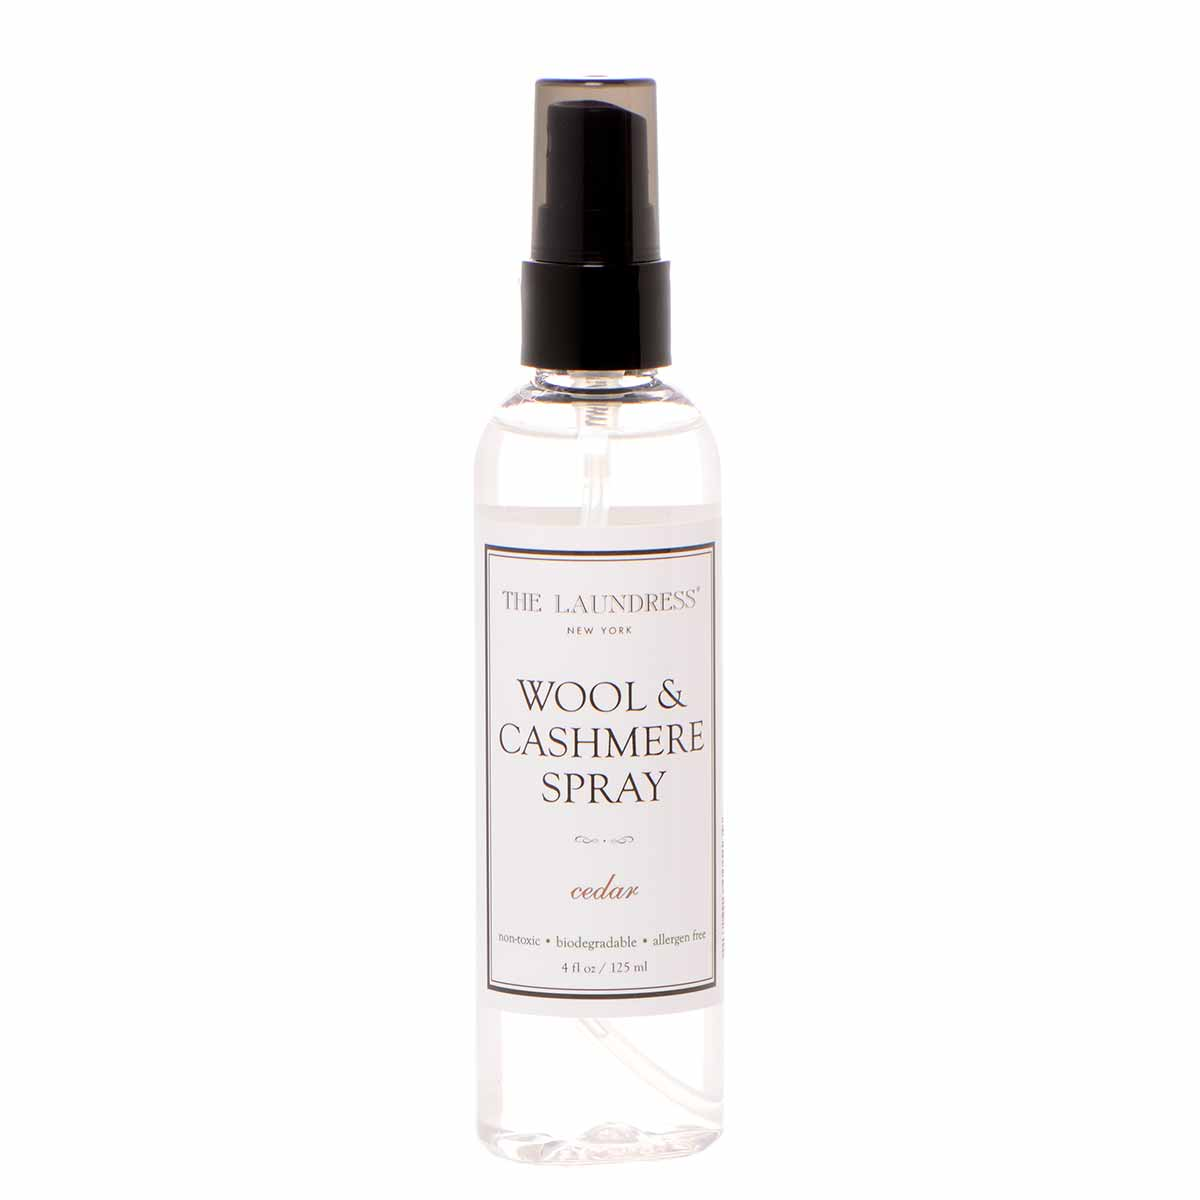 The Laundress Wool & Cashmere Spray-Amicale Cashmere